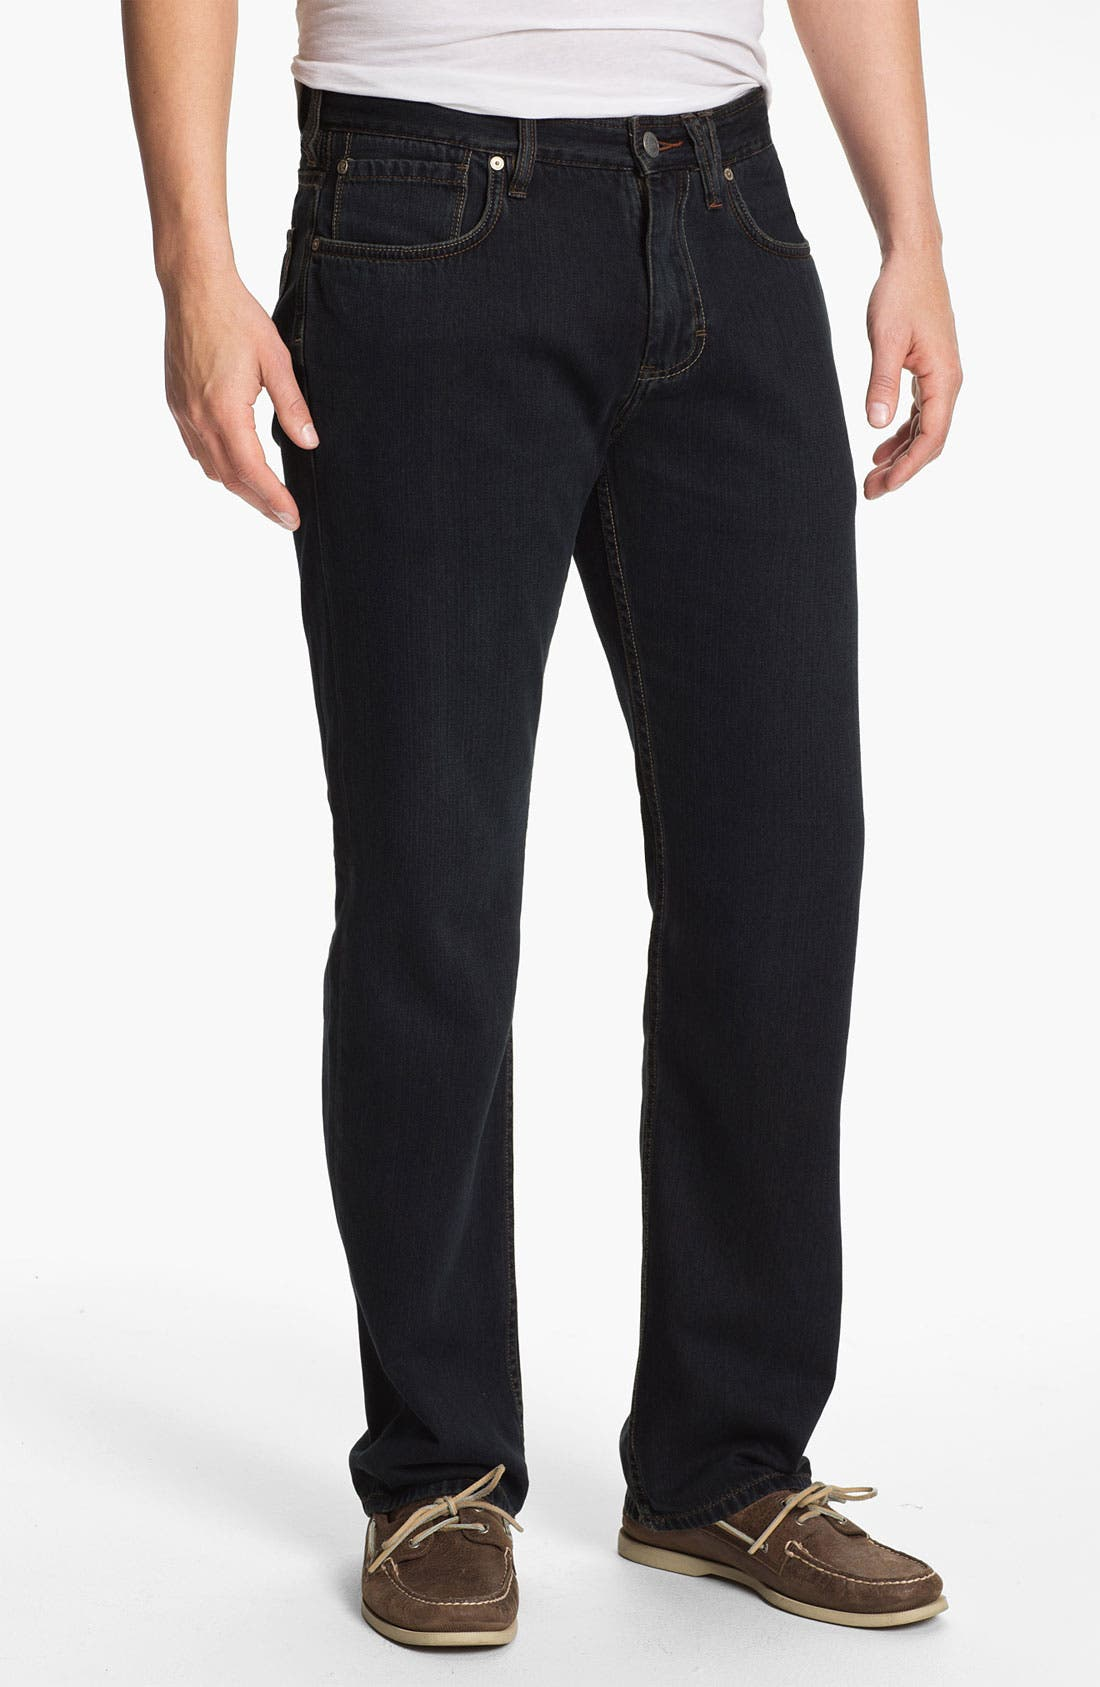 Alternate Image 1 Selected - Tommy Bahama Denim 'Coastal Island Ease' Straight Leg Jeans (Black Overdye)